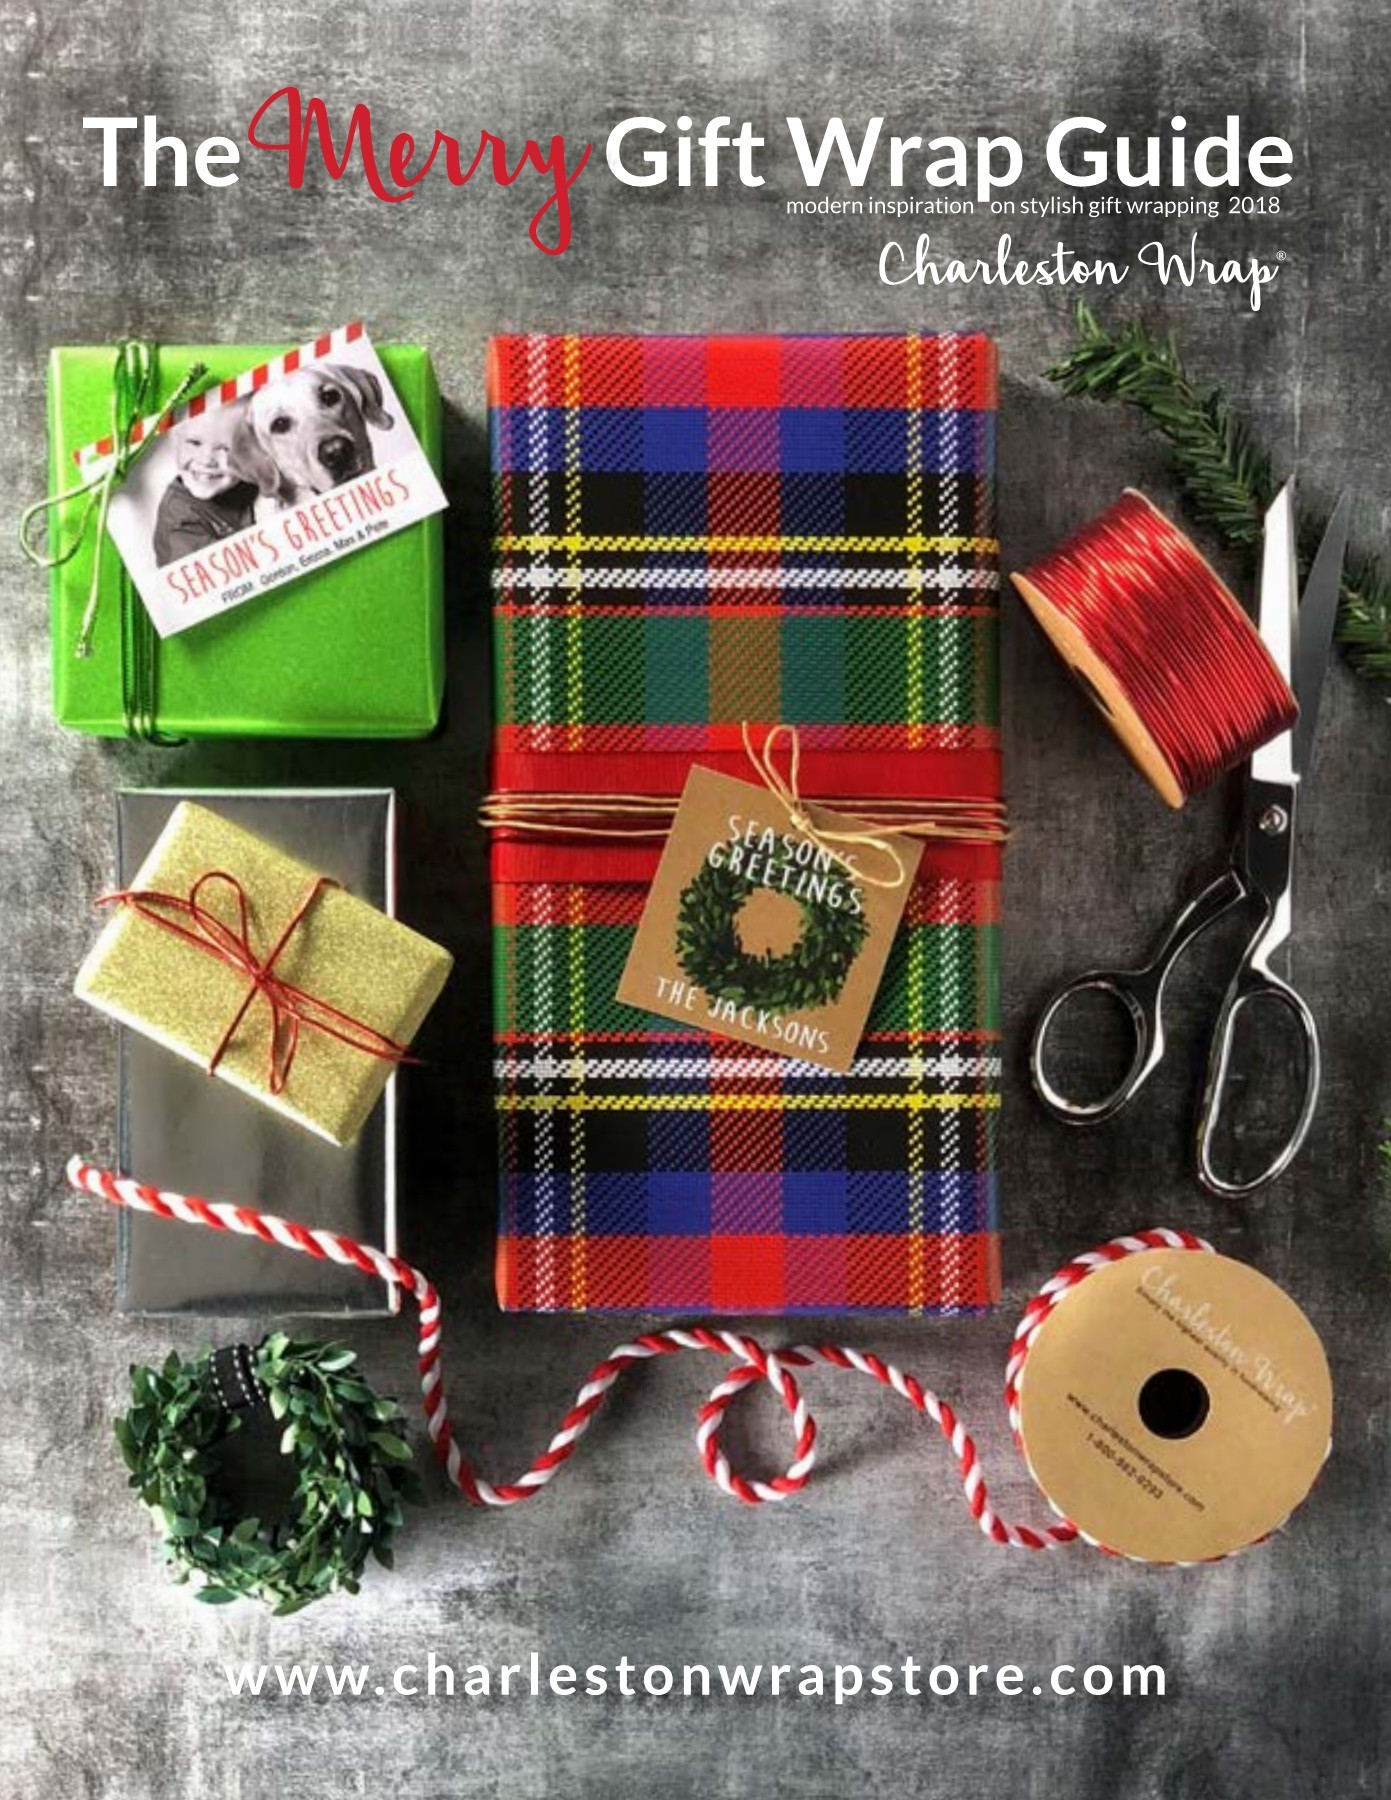 The Merry Gift Wrap Guide Cover